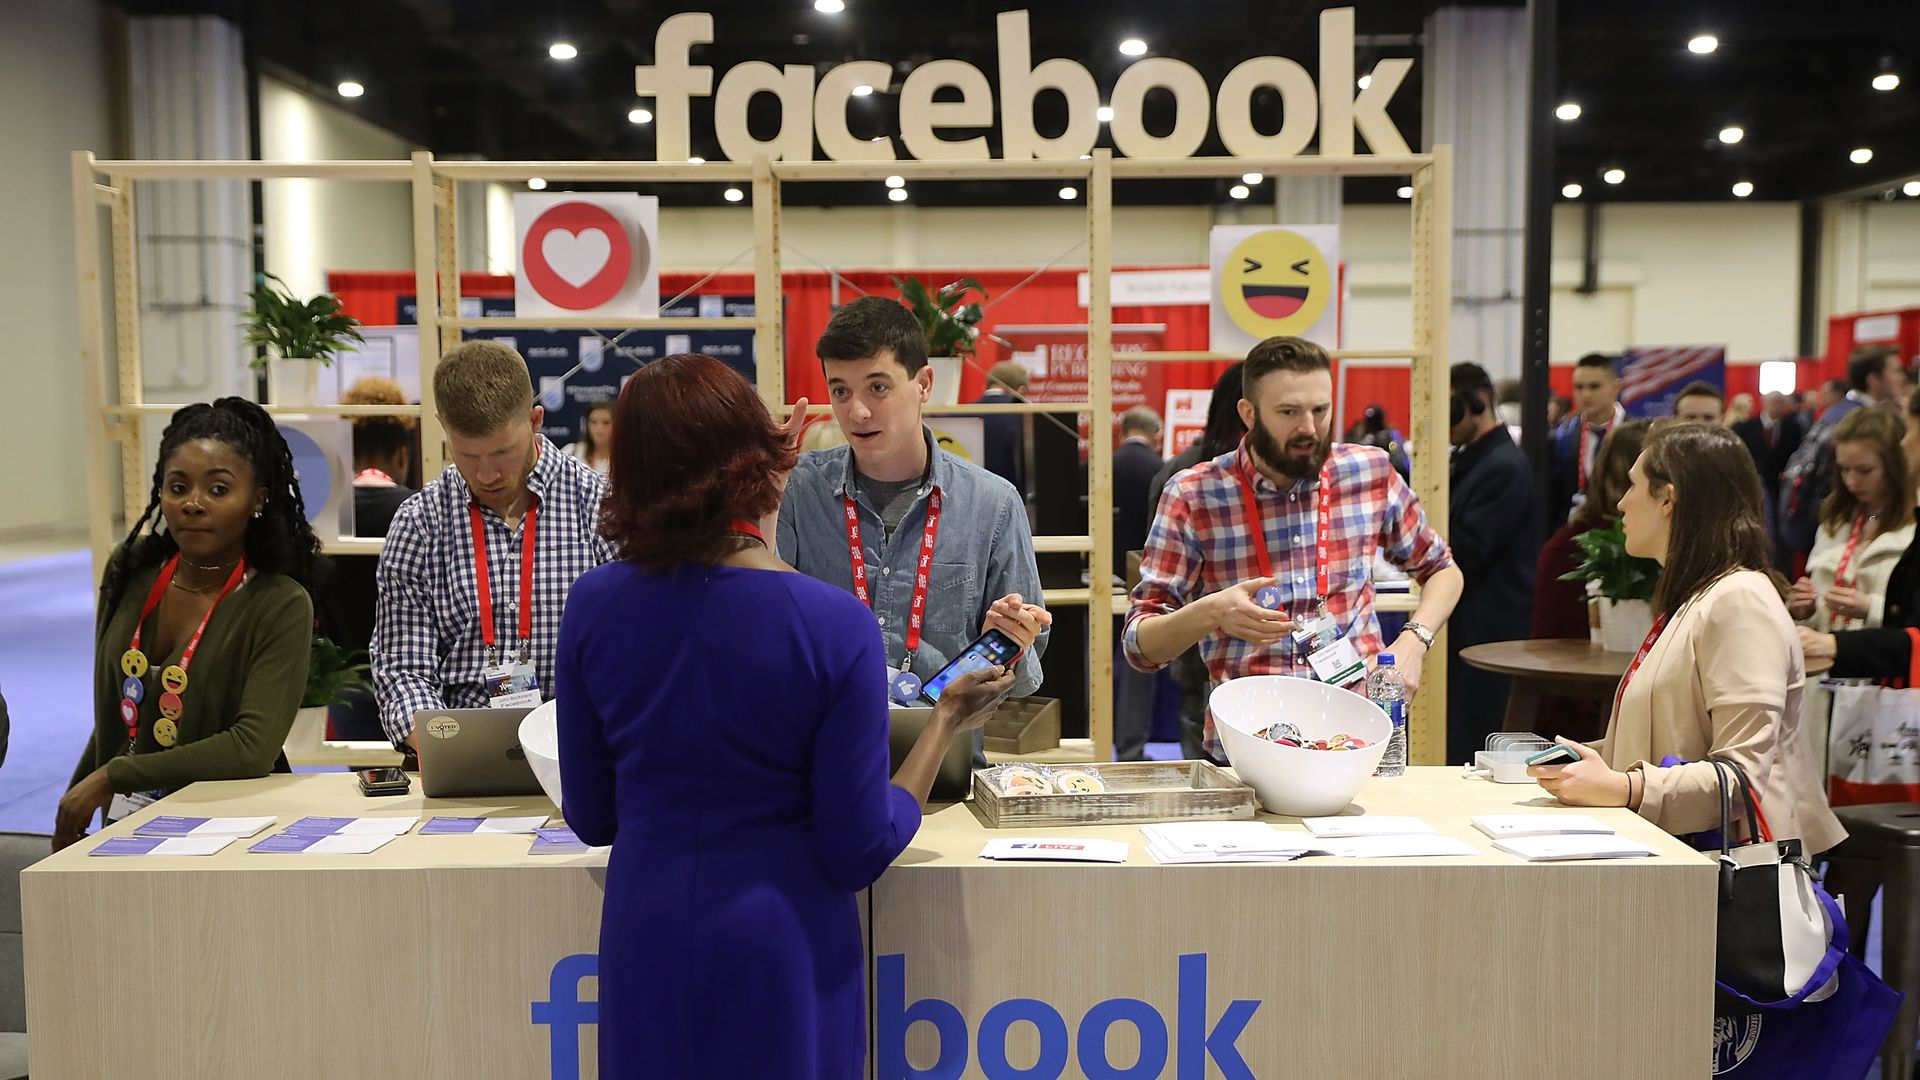 Facebook's booth at CPAC.